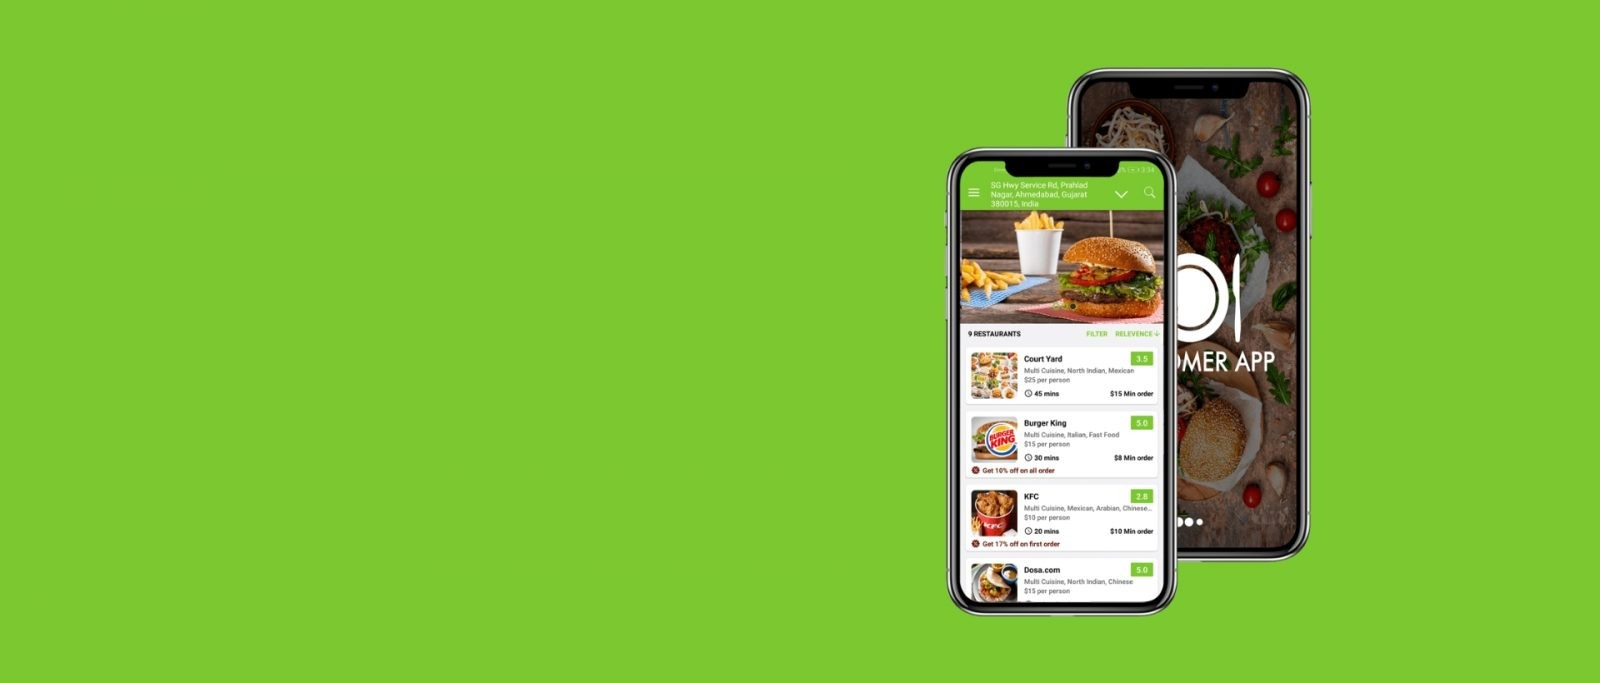 HOW MUCH DOES IT COST TO BUILD AN ON-DEMAND FOOD DELIVERY APP LIKE MENULOG